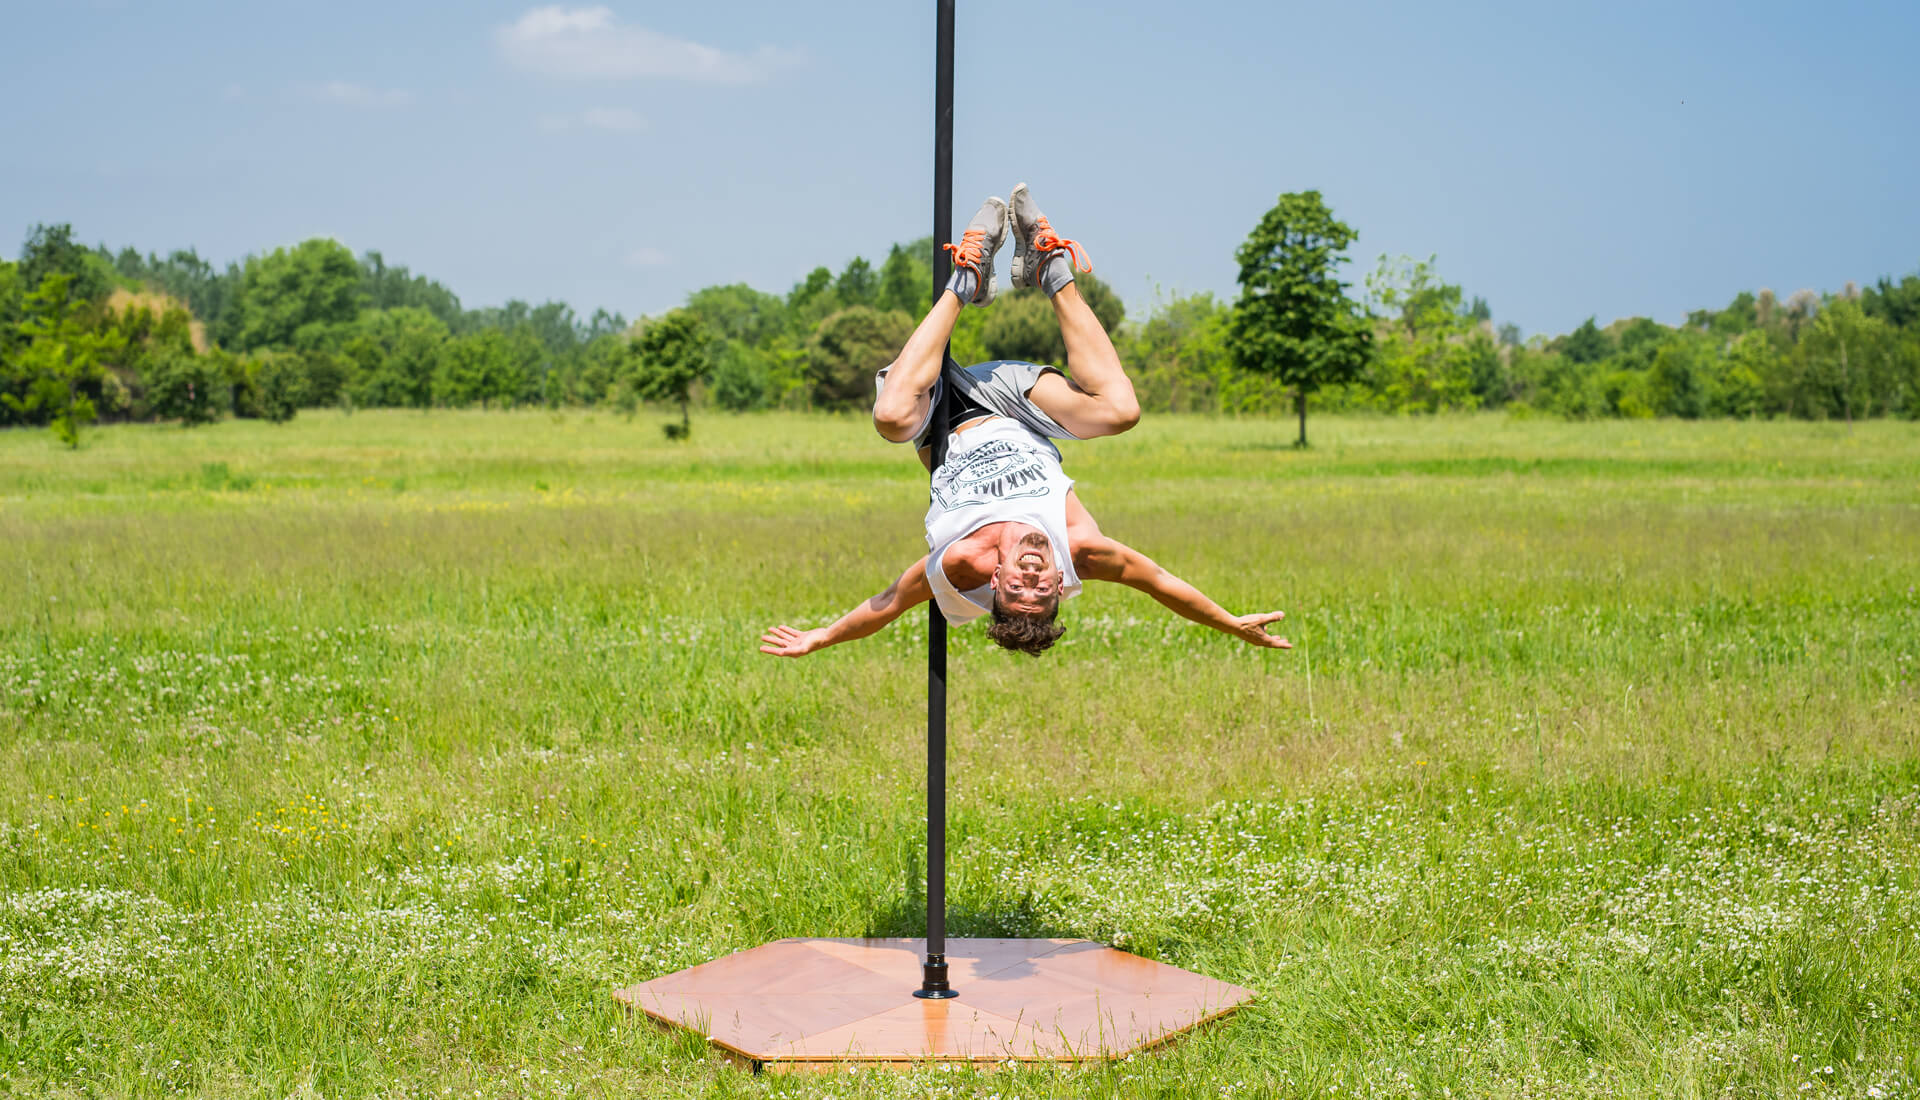 Pole for Pole Dance, Custom Pole Dance Equipment